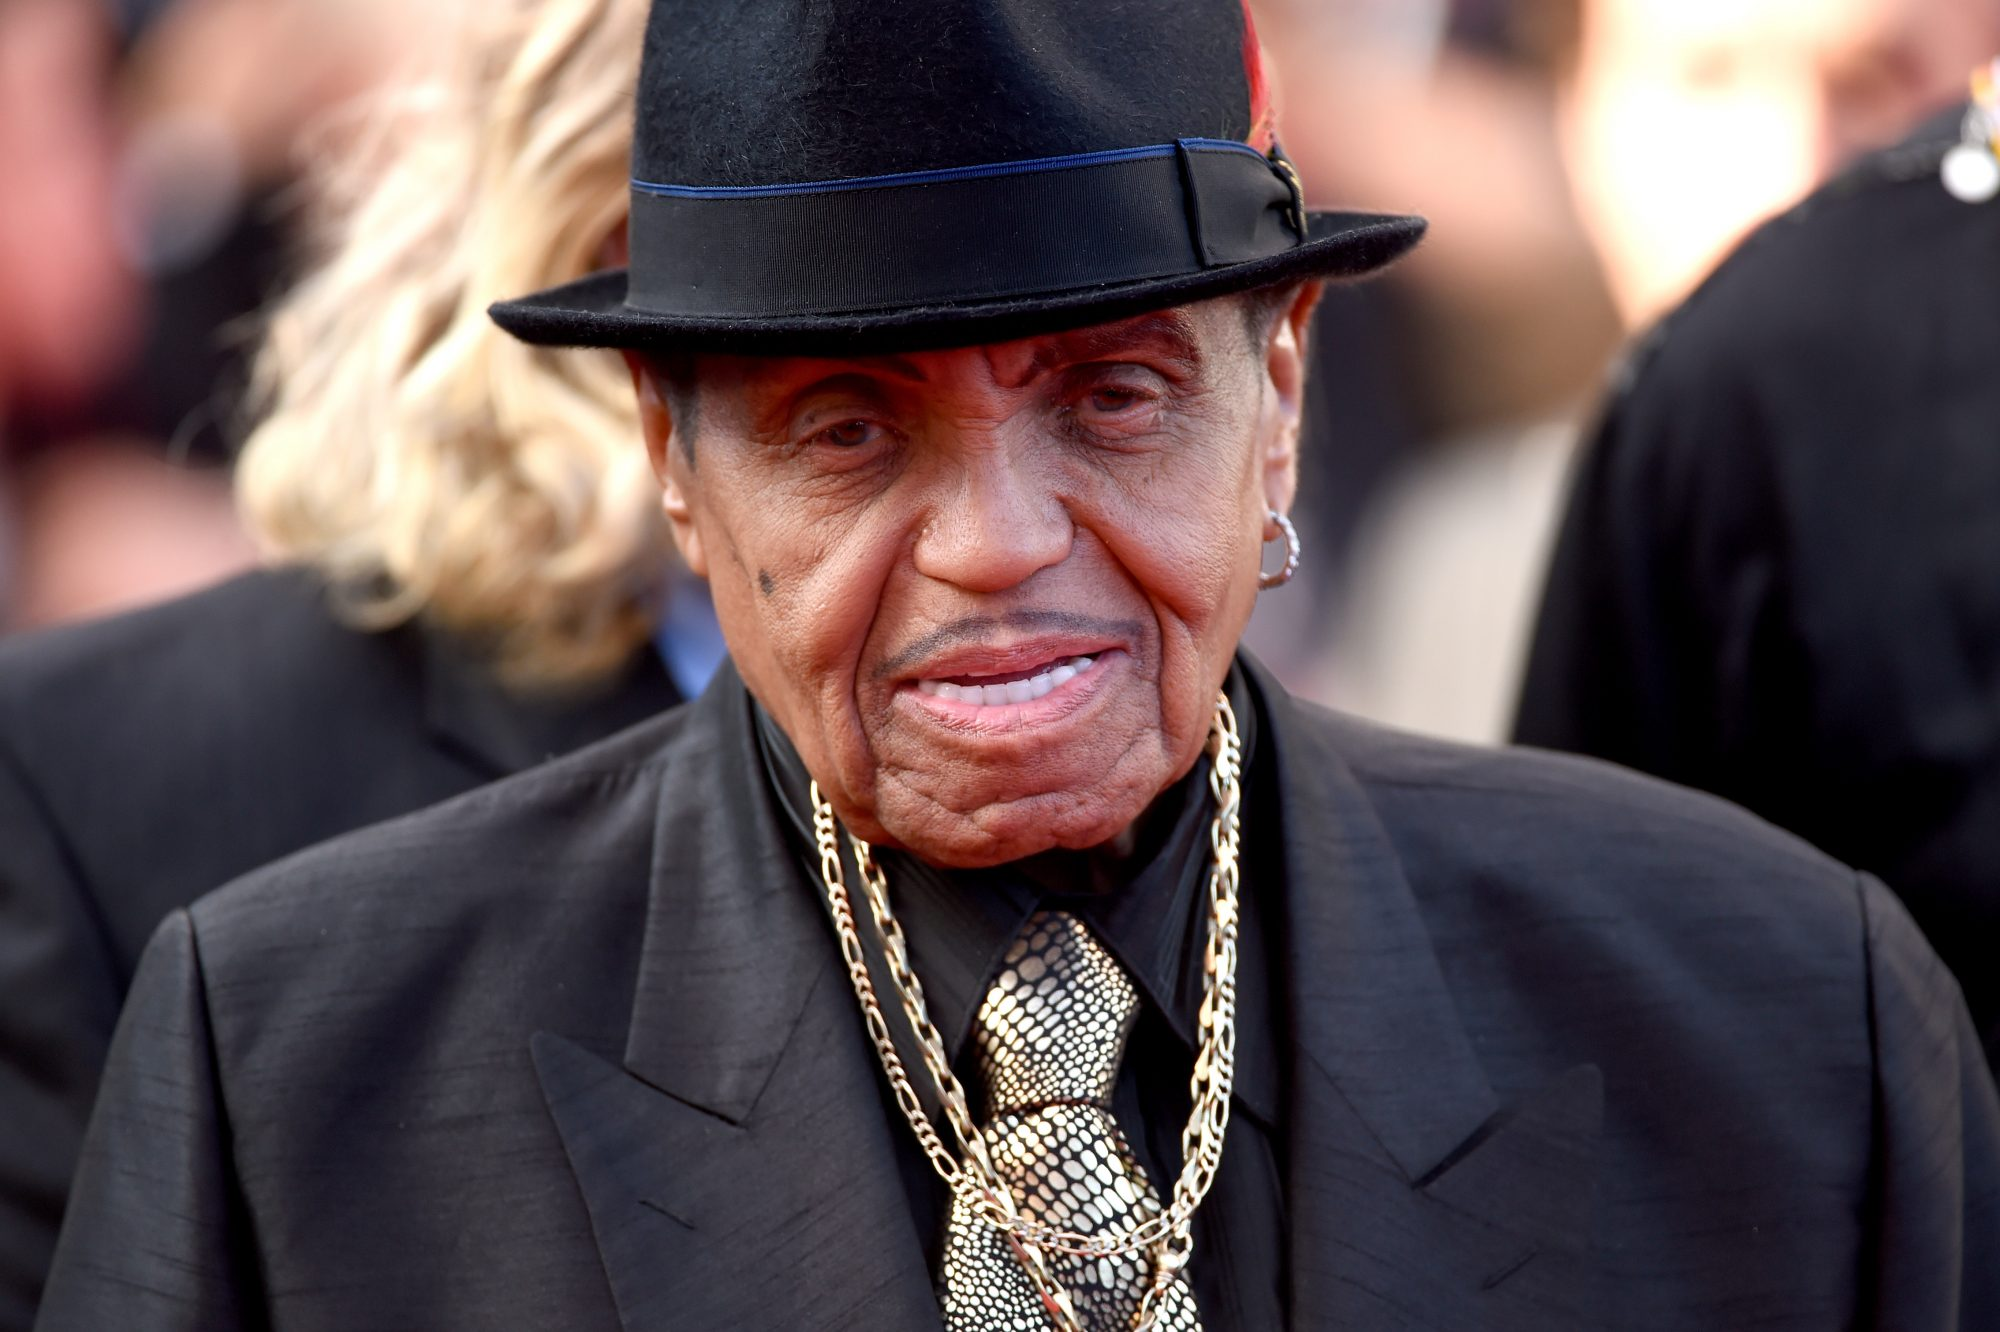 Joe Jackson's Family Flocks to His Side as He's Hospitalized with Terminal Cancer